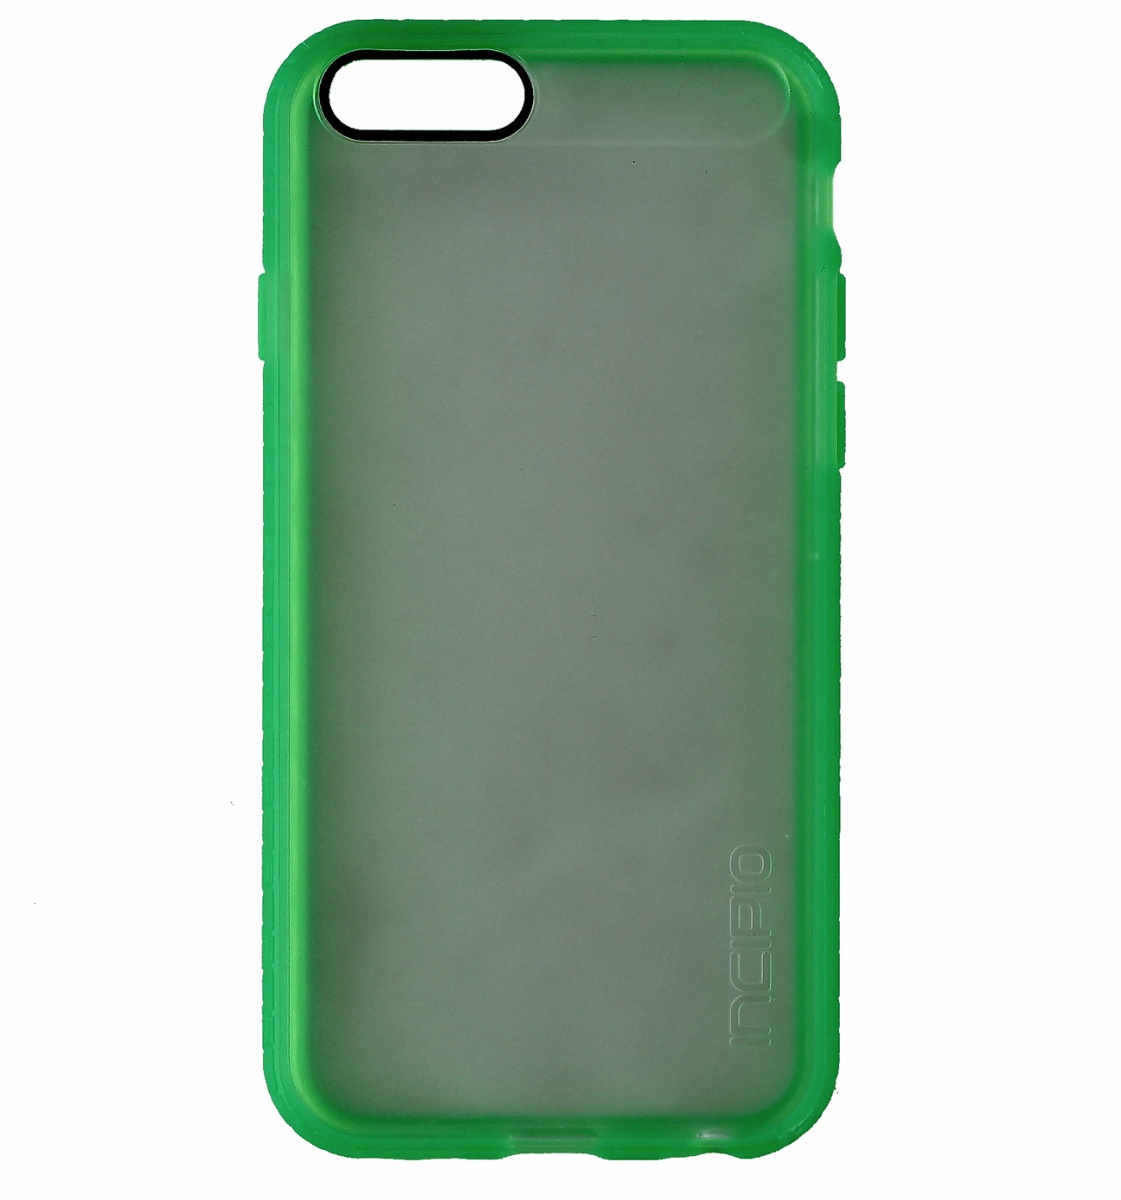 Incipio Octane Series Impact Protective Case Cover iPhone 6 / 6s - Frost / Green